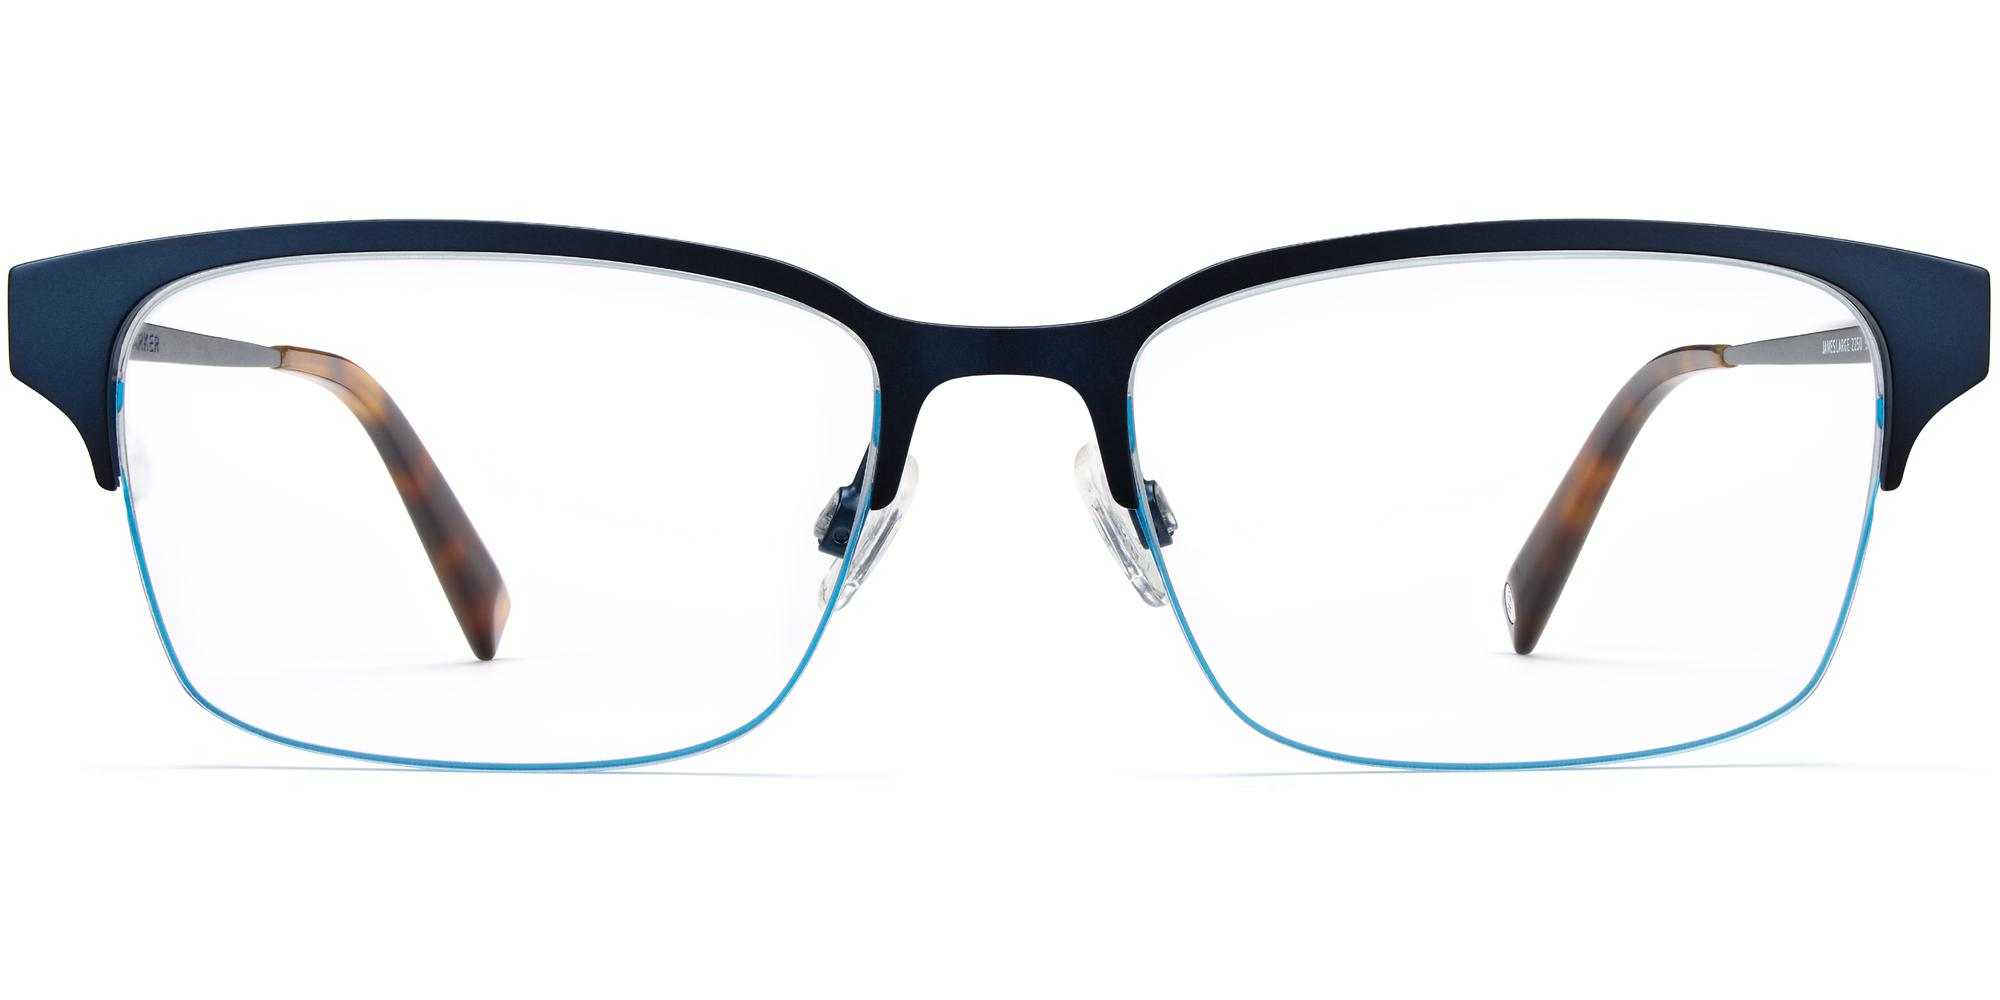 Front View Image of James Eyeglasses Collection, by Warby Parker Brand, in Brushed Navy Color